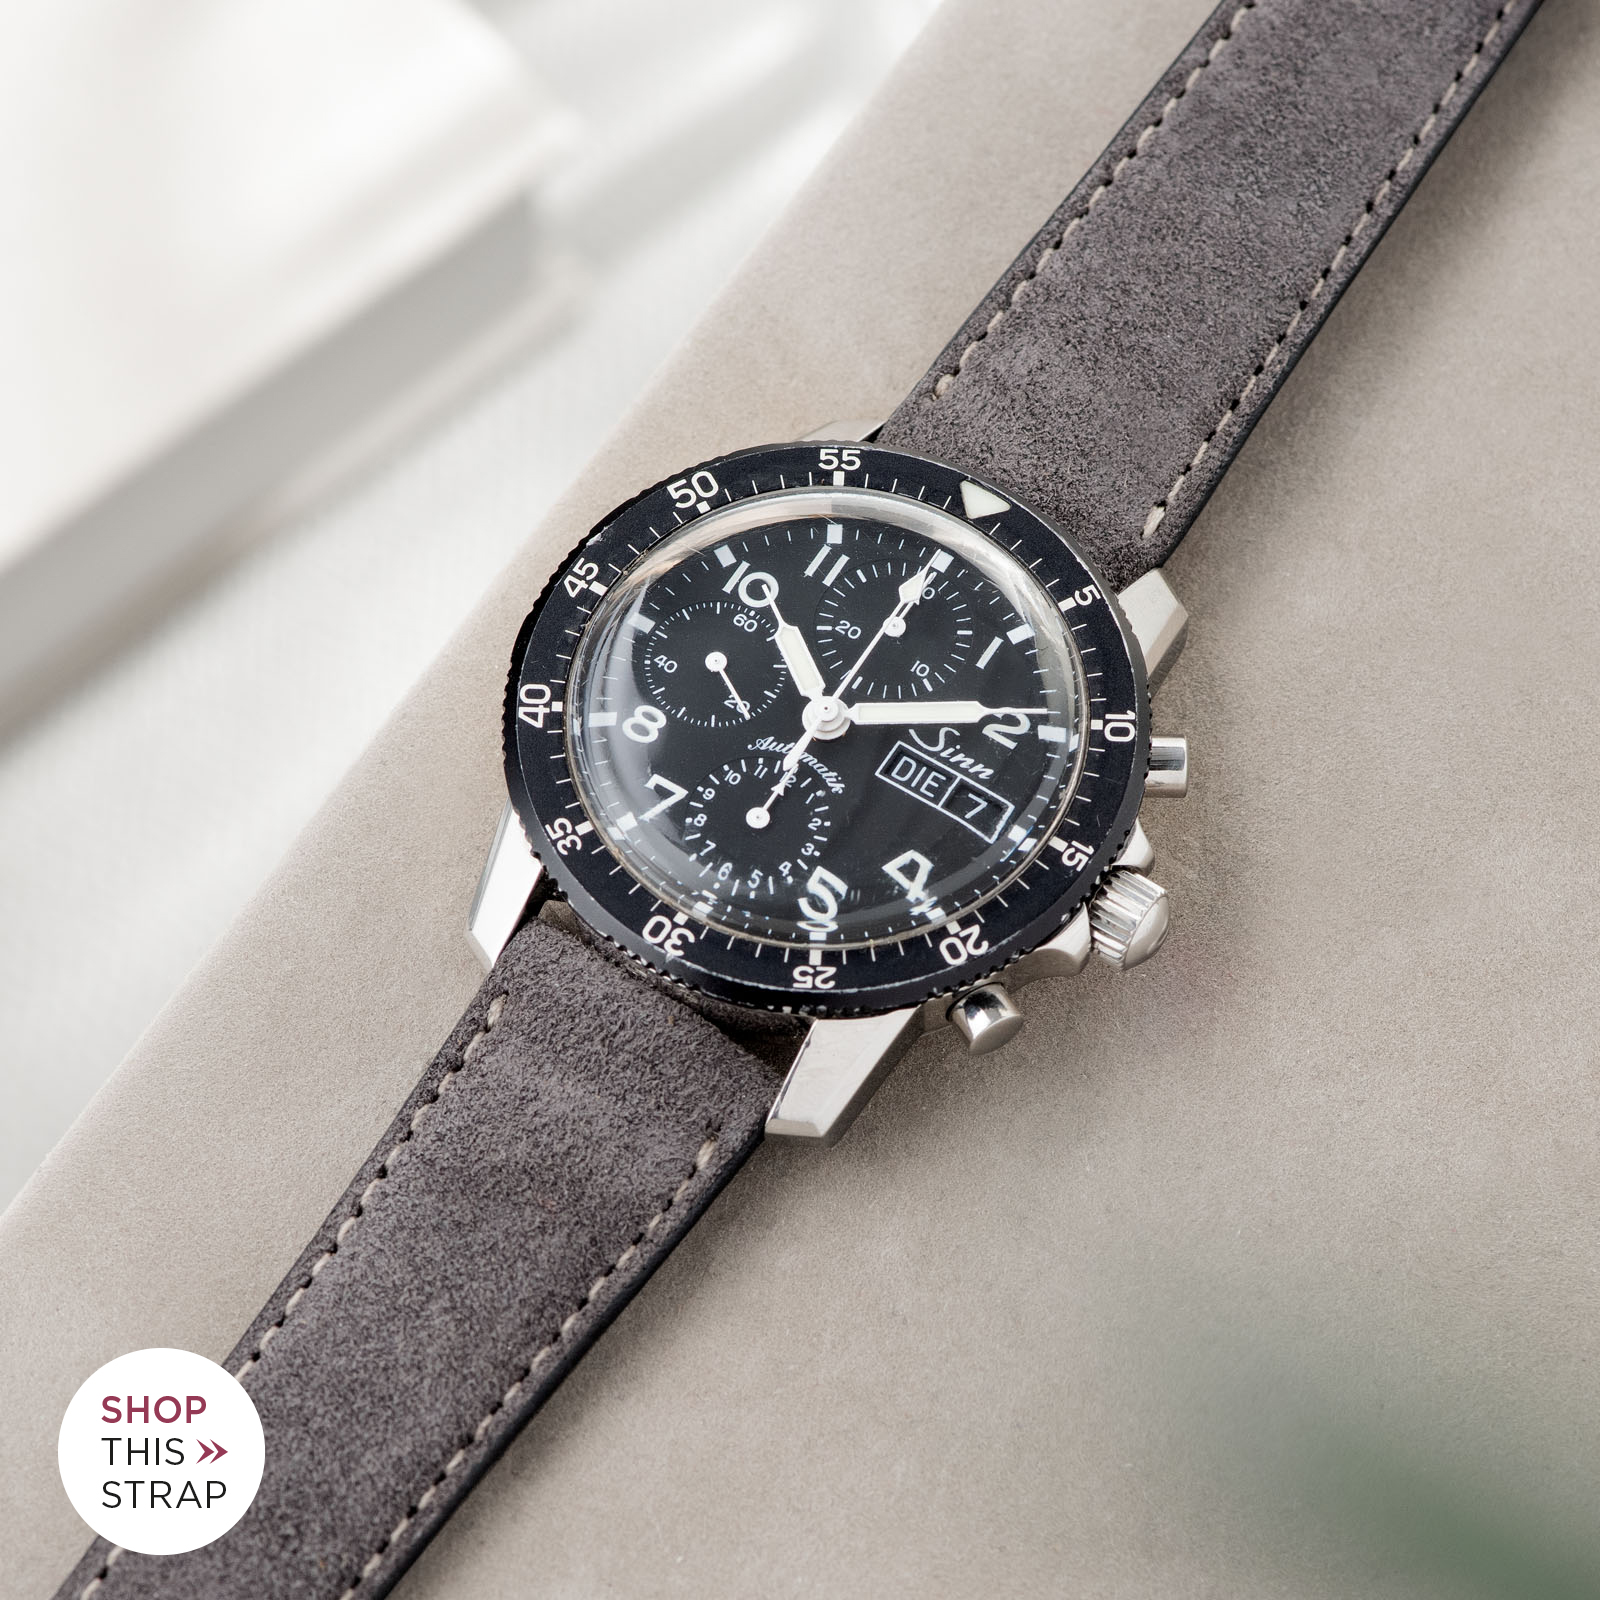 Bulang and Sons_Strap Guide_Sinn 103_Refined Dark Grey Suede Leather Watch Strap